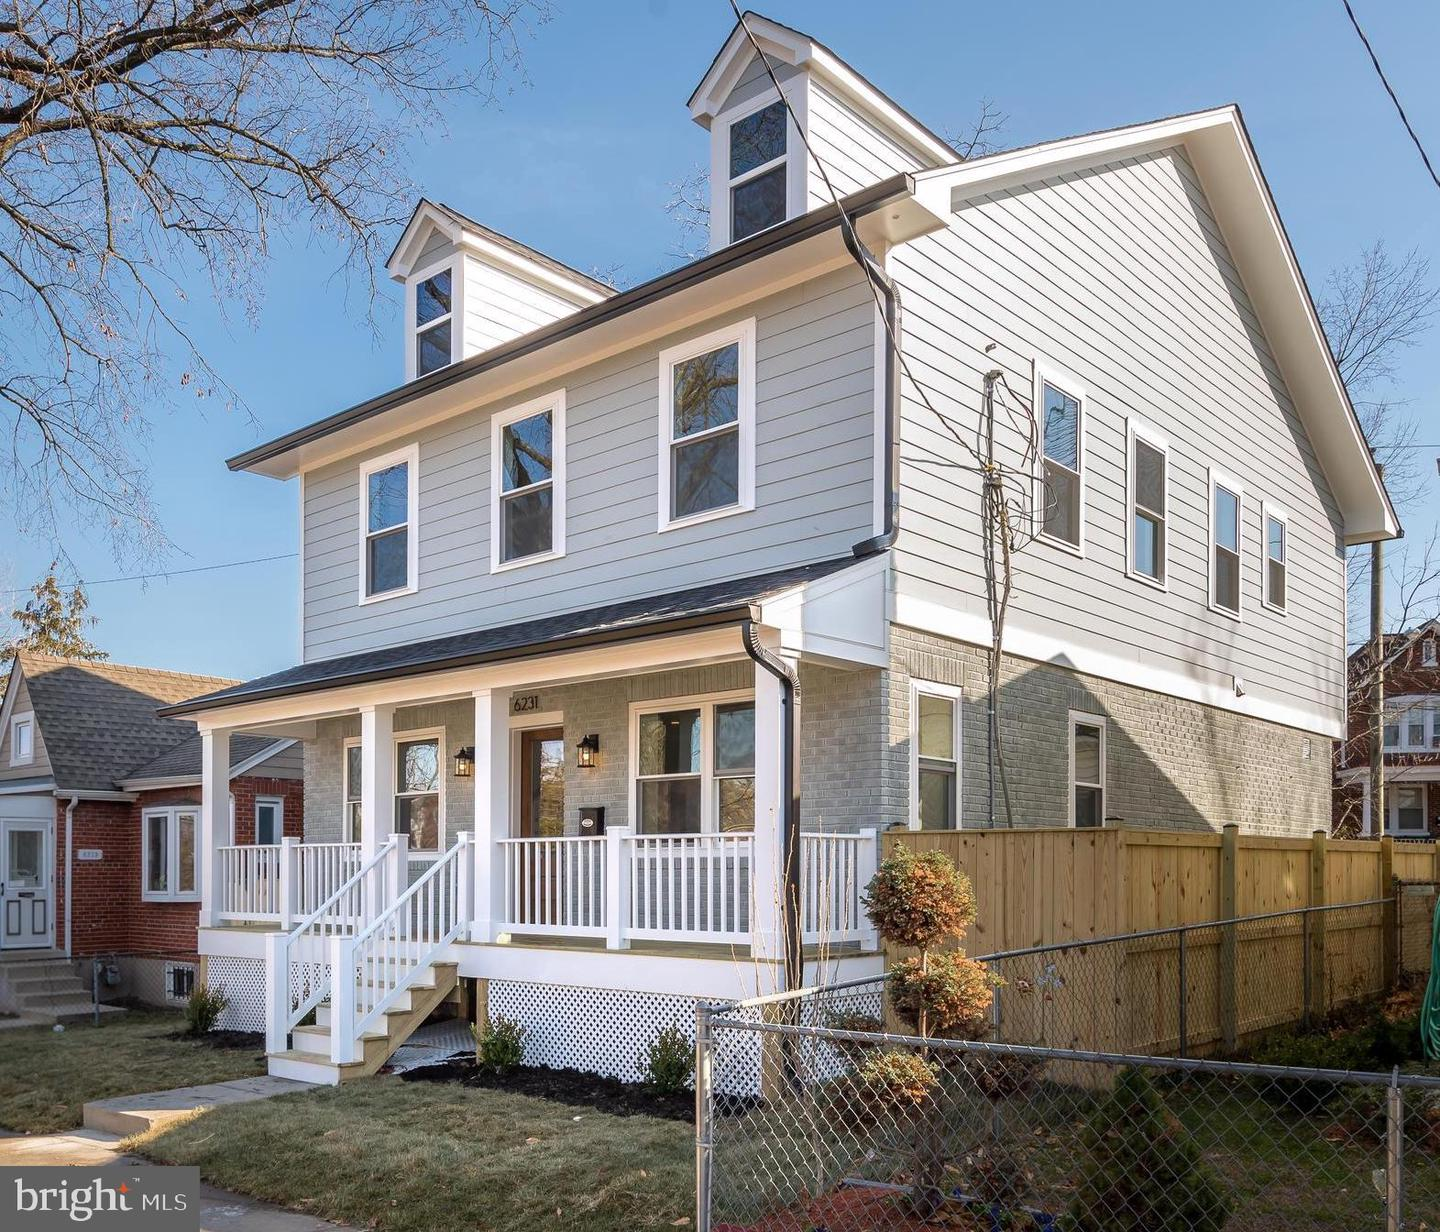 6231 PINEY BRANCH ROAD NW, WASHINGTON, District of Columbia